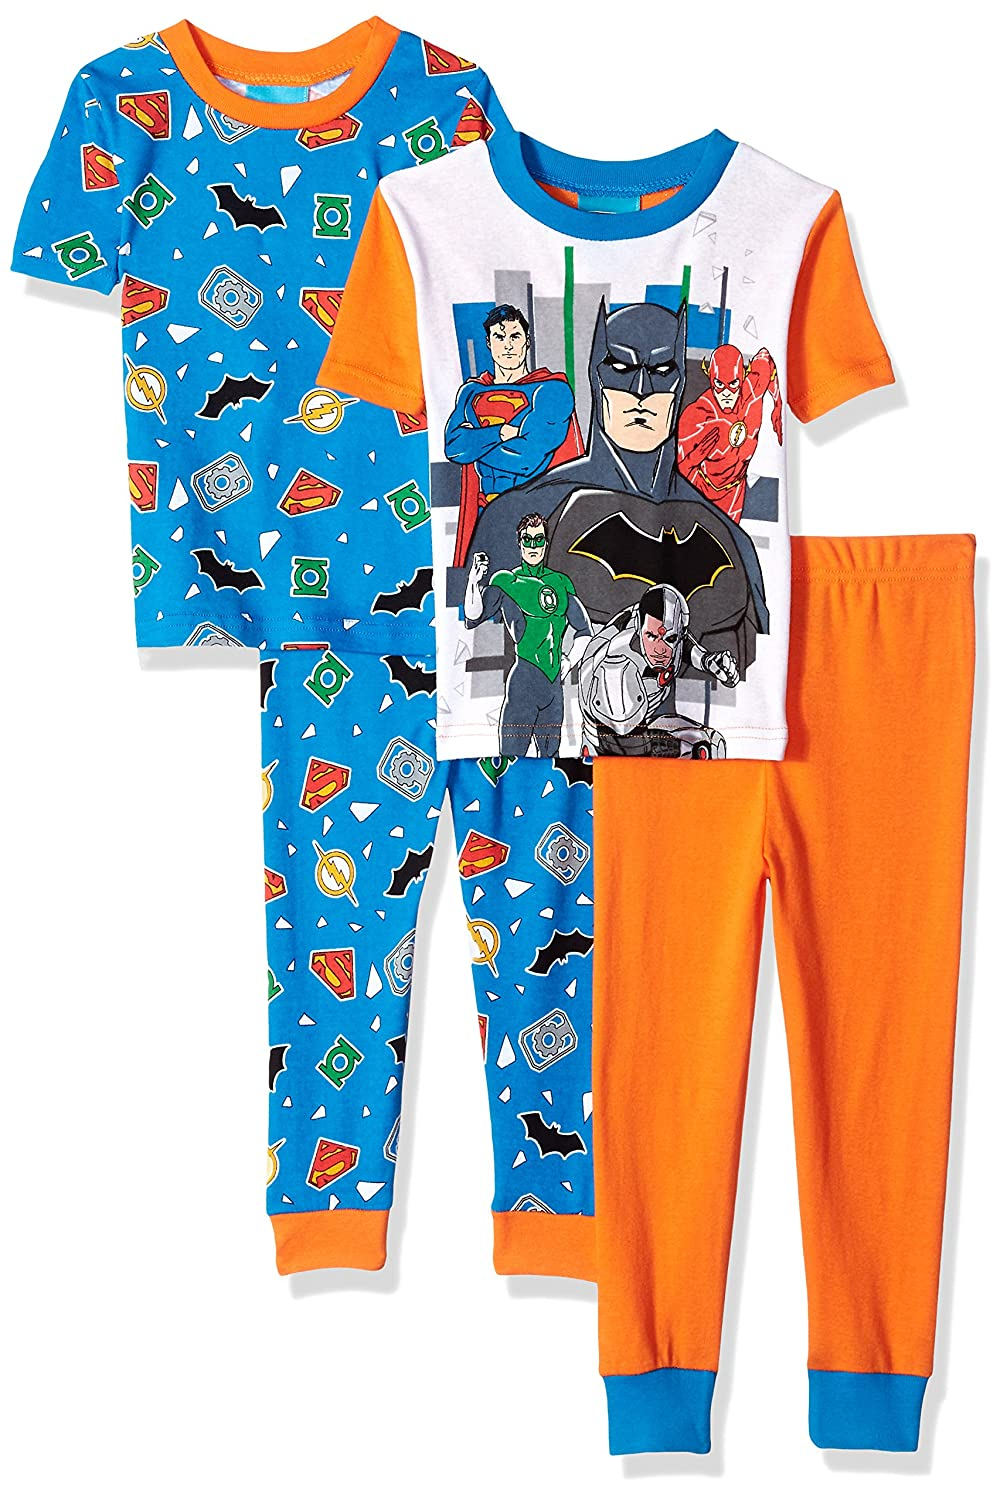 296ba1dfc Amazon.com  DC Comics Boys Justice League 4-pc Pj